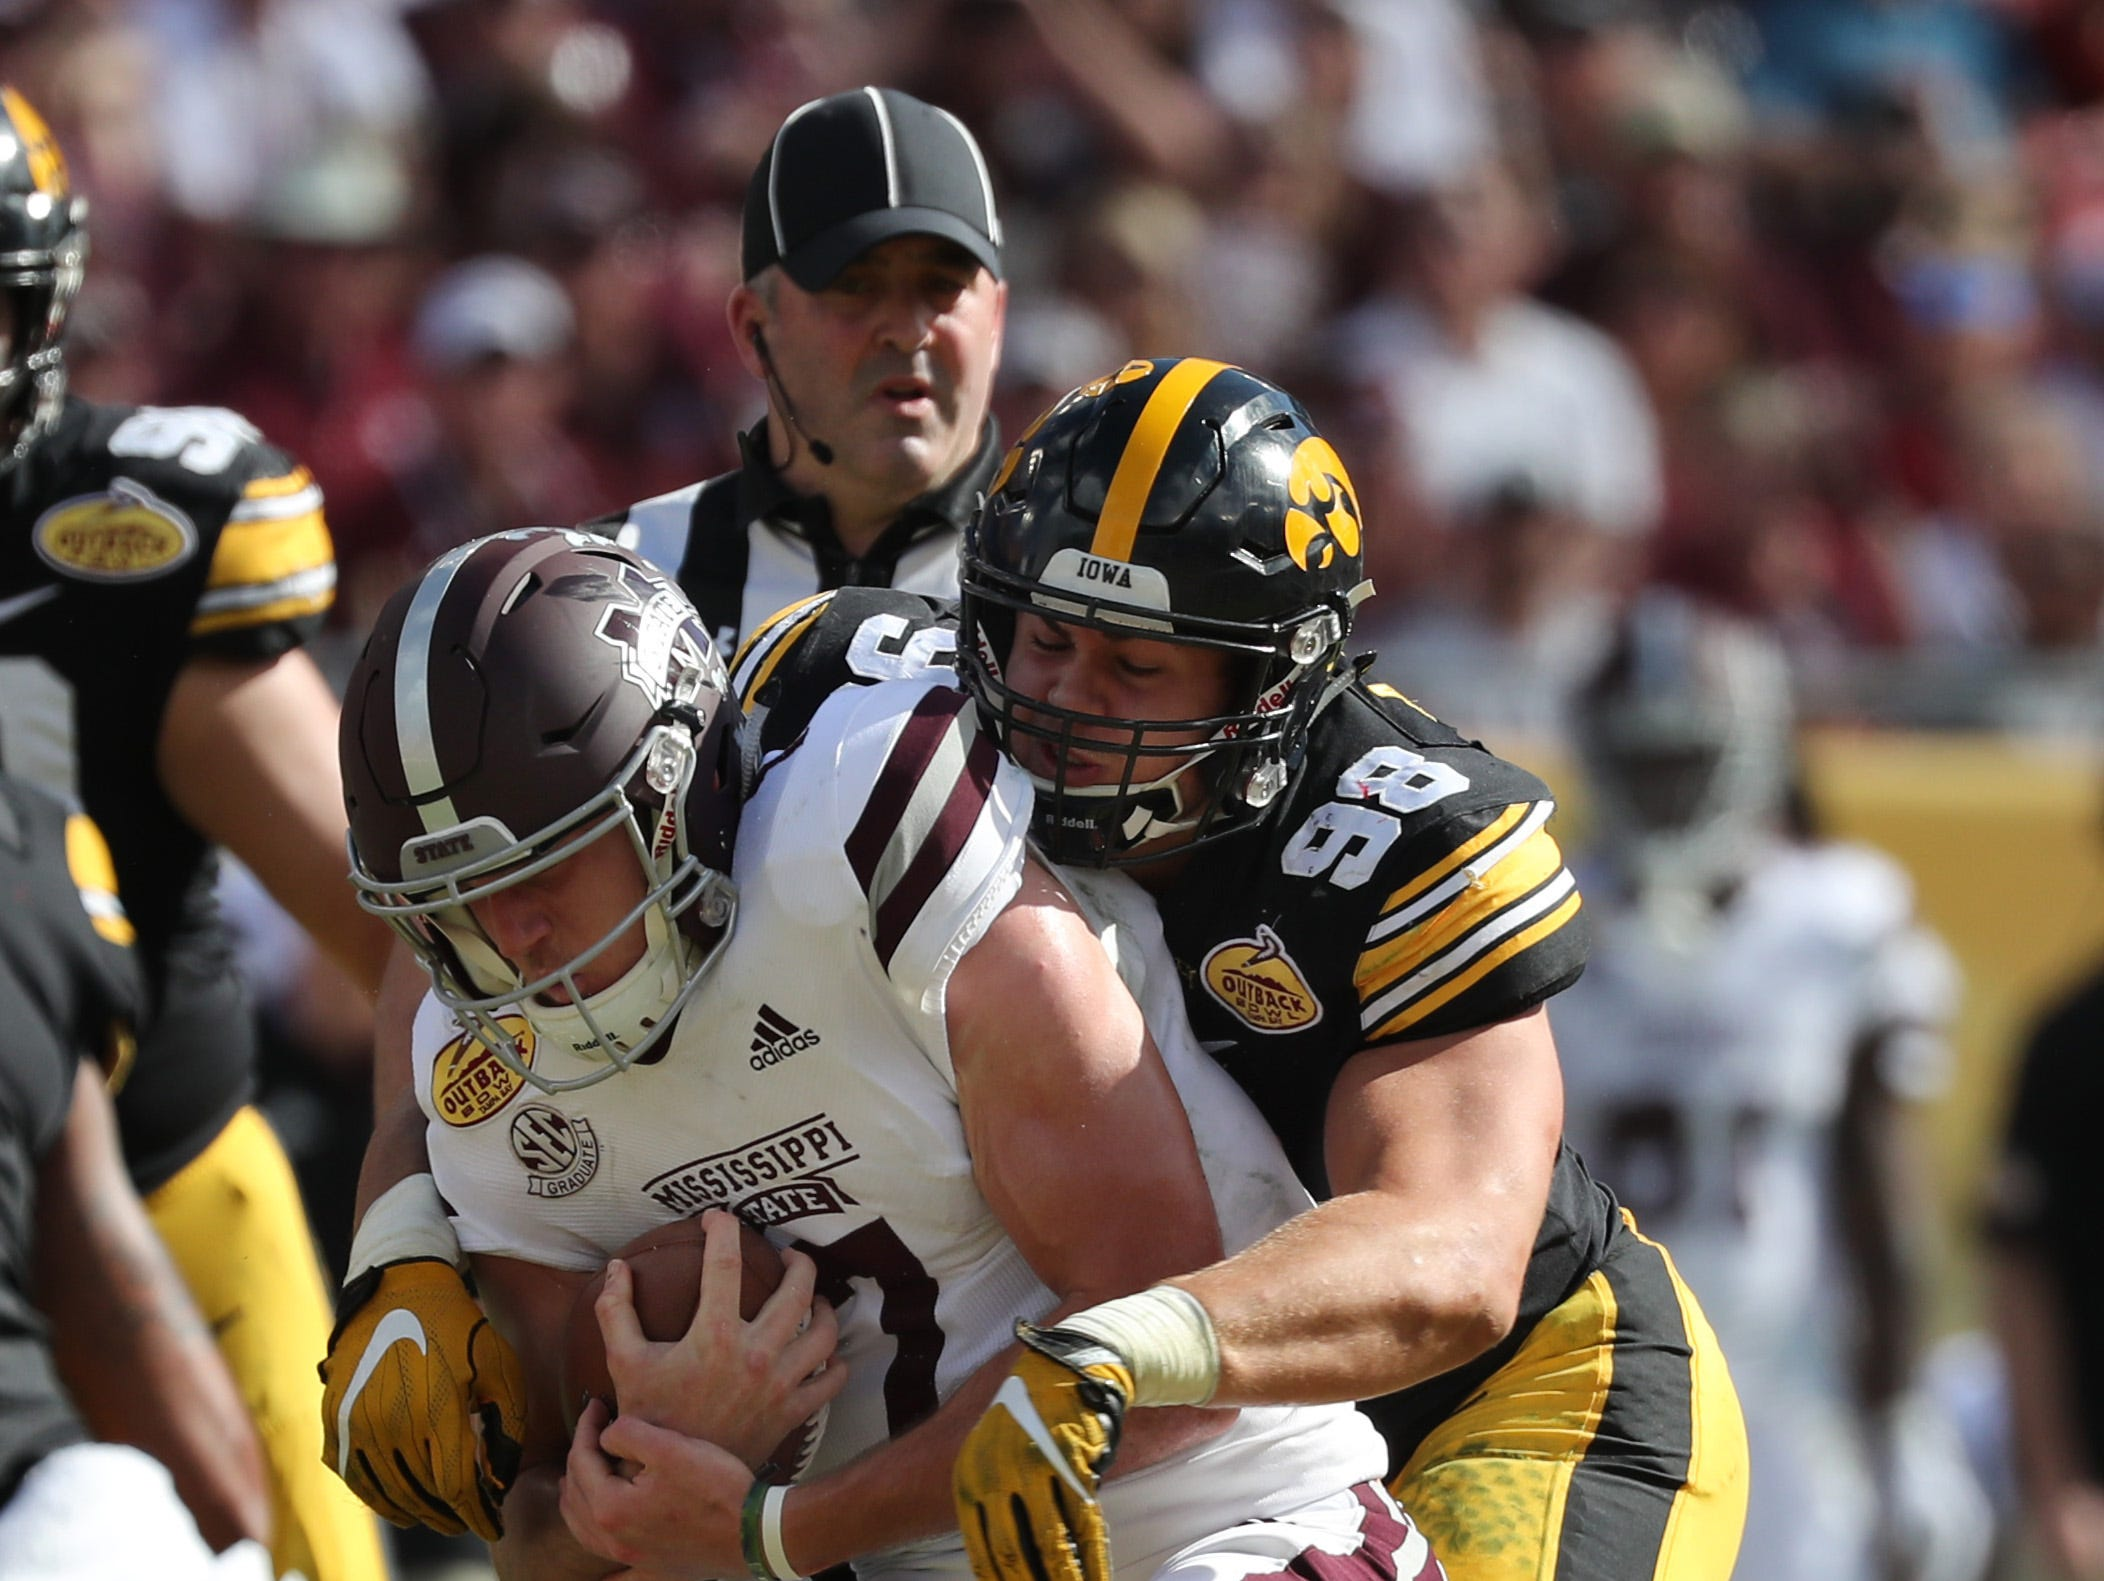 Jan 1, 2019; Tampa, FL, USA; Iowa Hawkeyes defensive end Anthony Nelson (98) tackles Mississippi State Bulldogs quarterback Nick Fitzgerald (7) during the second quarter in the 2019 Outback Bowl at Raymond James Stadium.